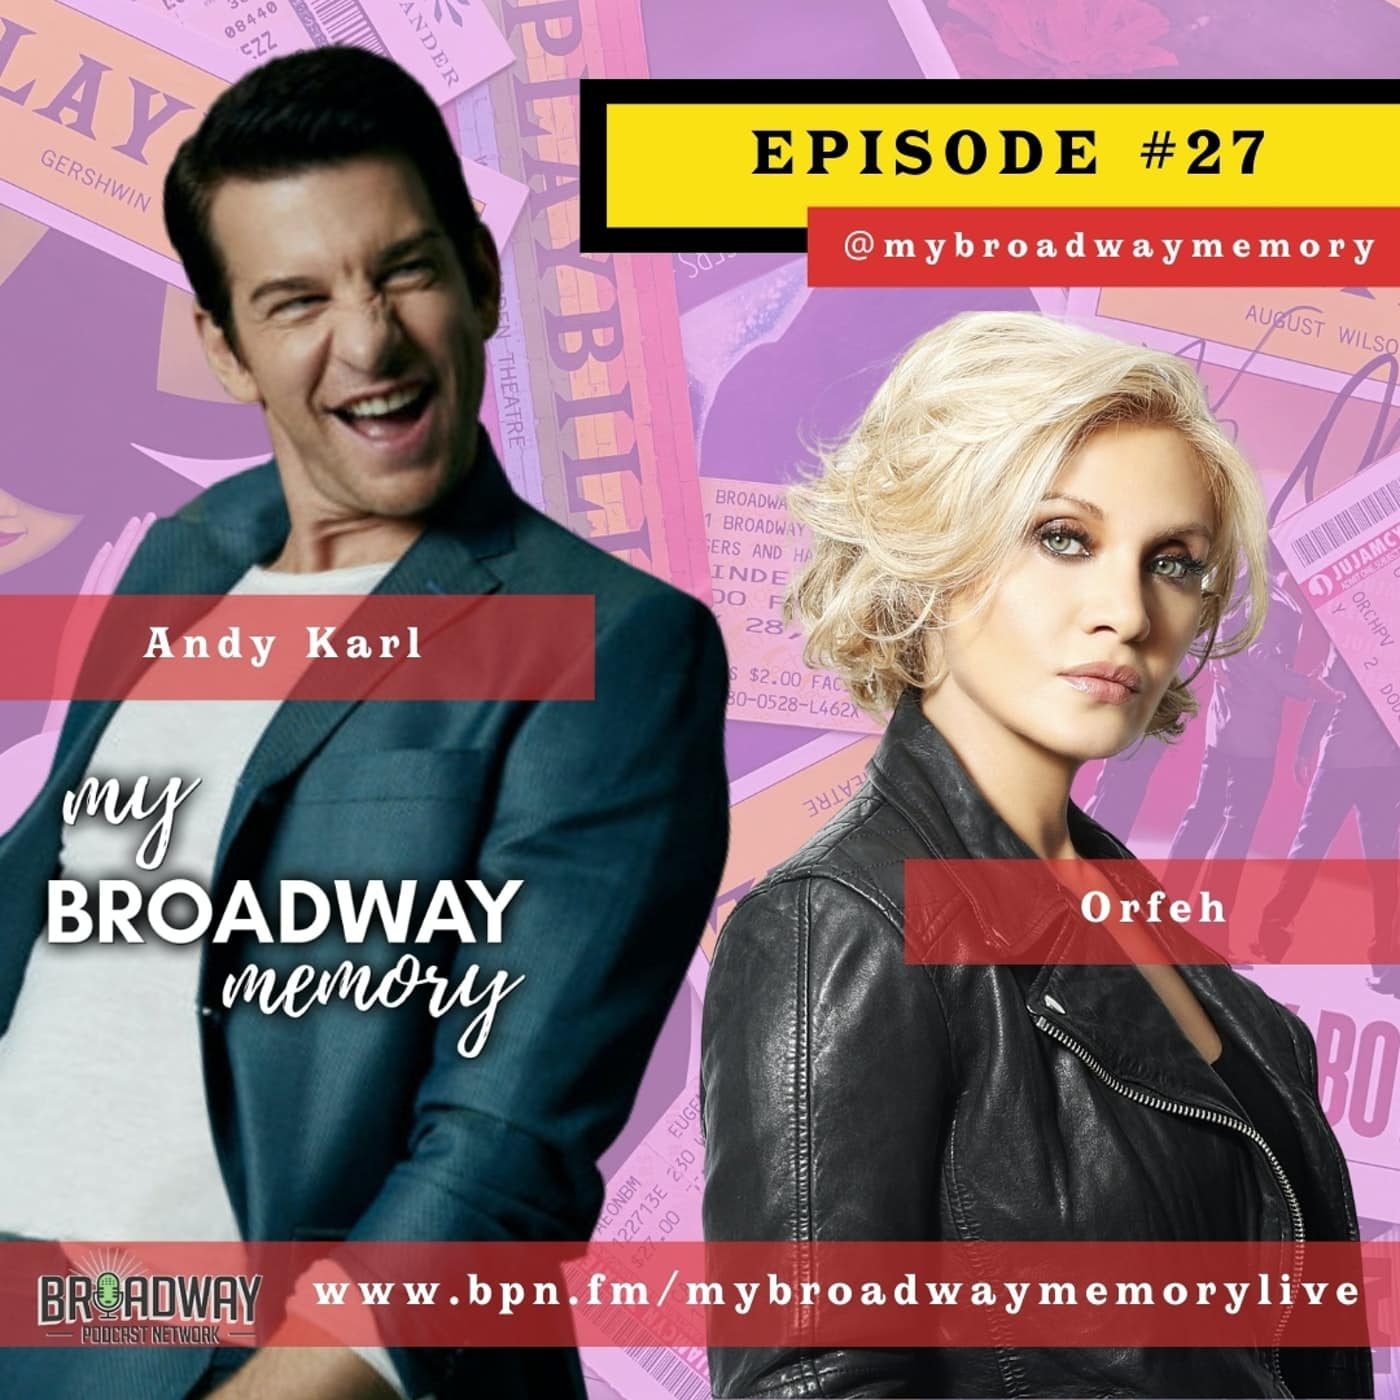 27 - LIVE: Andy Karl and Orfeh